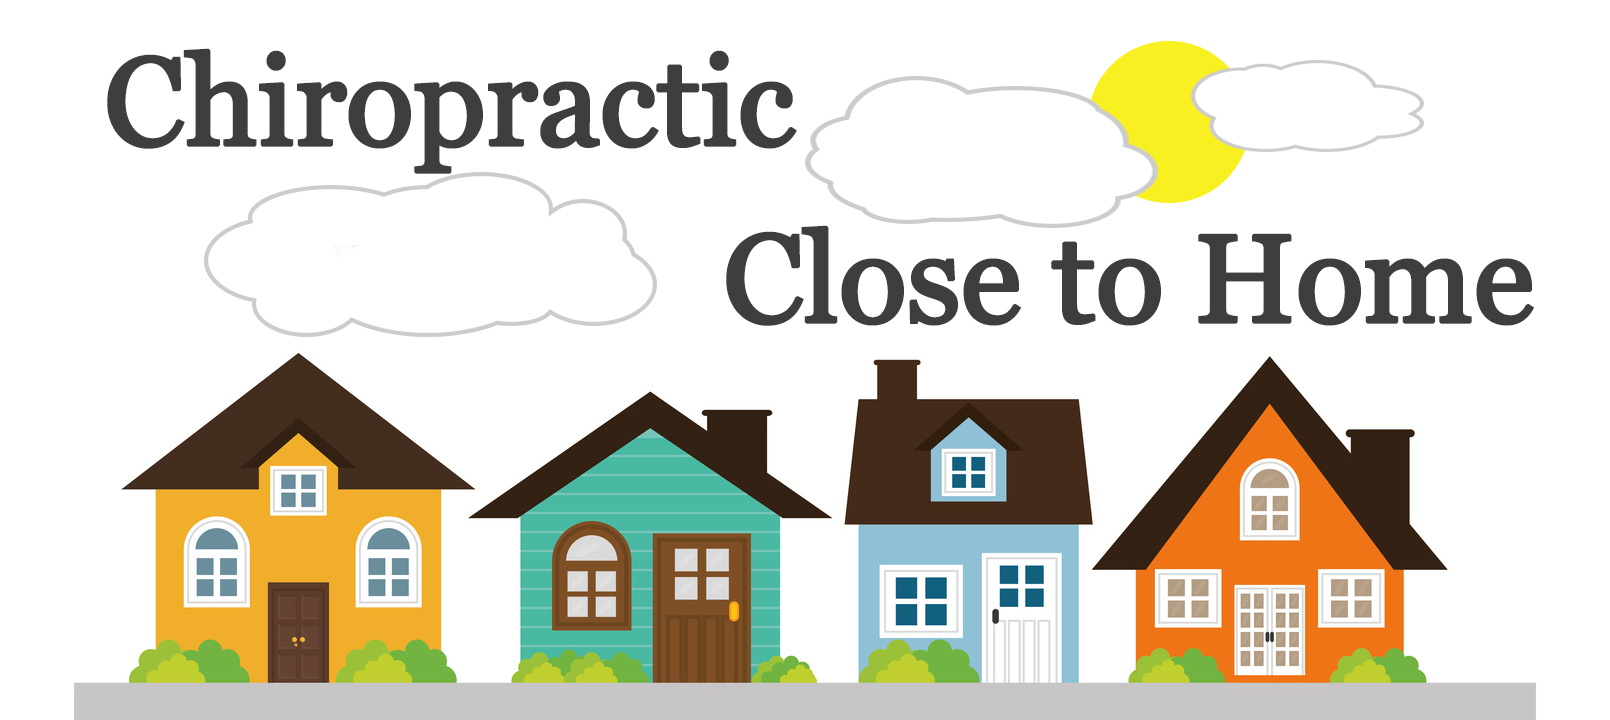 Chiropractic Close to Home